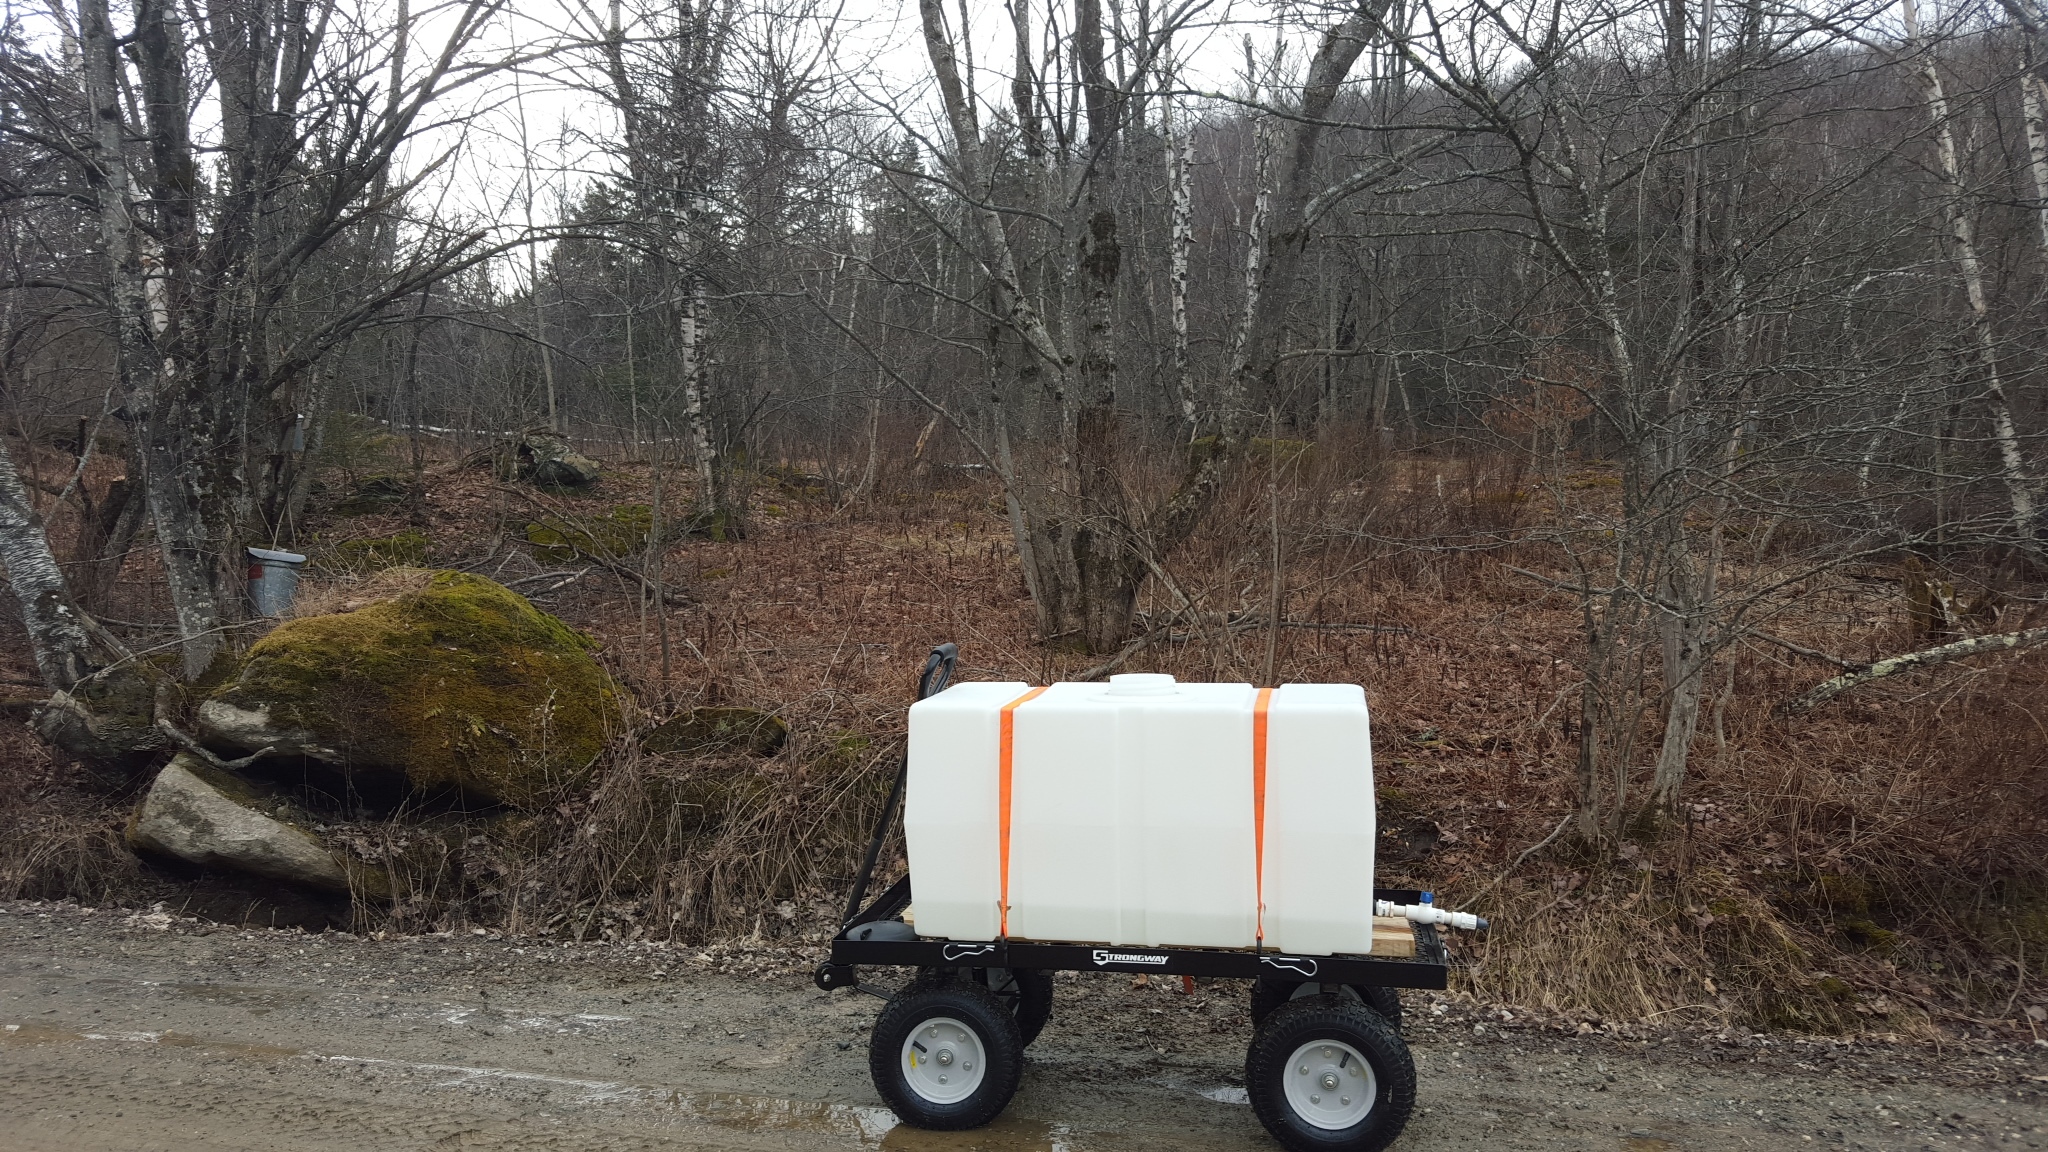 Our Mobile Sap Collector